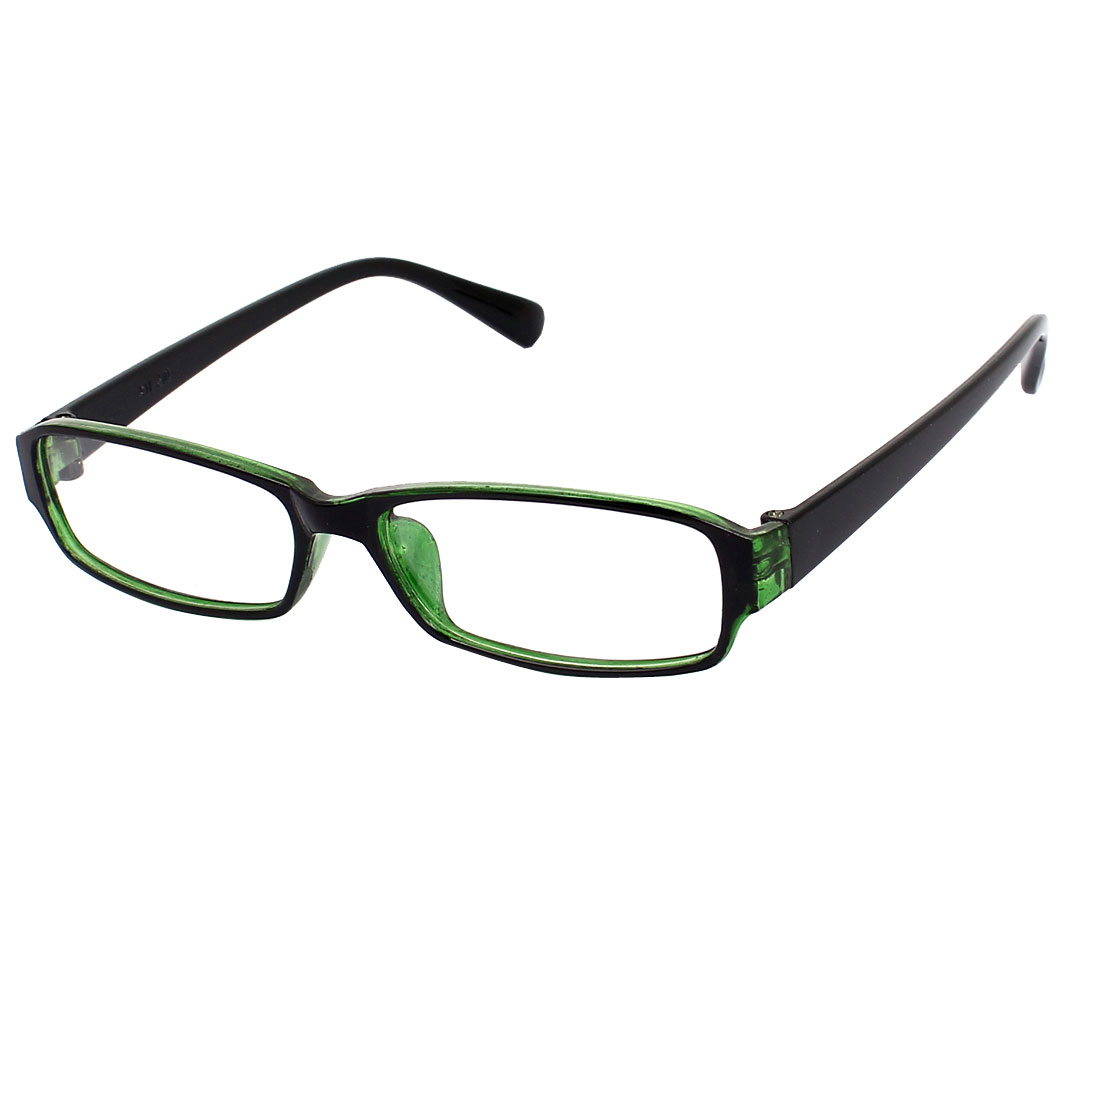 Black Green Plastic Full Rim Rectangle Lens Plain Eyeglasses Plano Glasses for Children